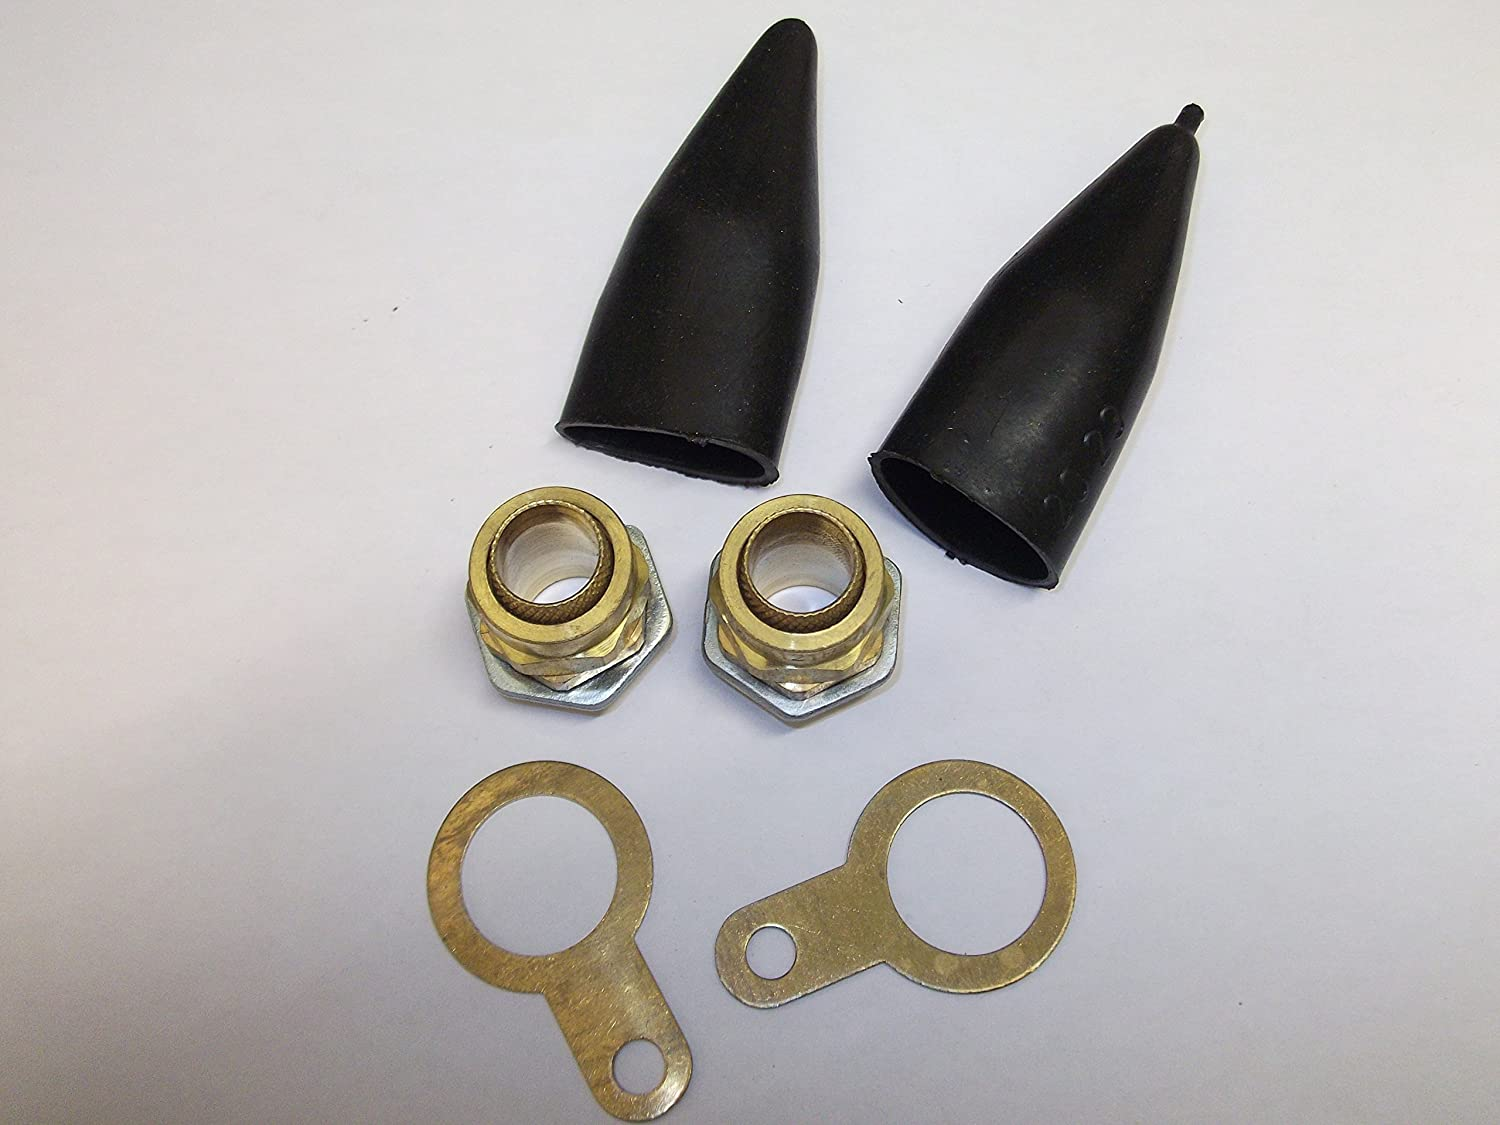 2 Sets 4mm Cable 2 to 3 Core Brass Armoured Cable Glands SWA BS6121 Outdoor